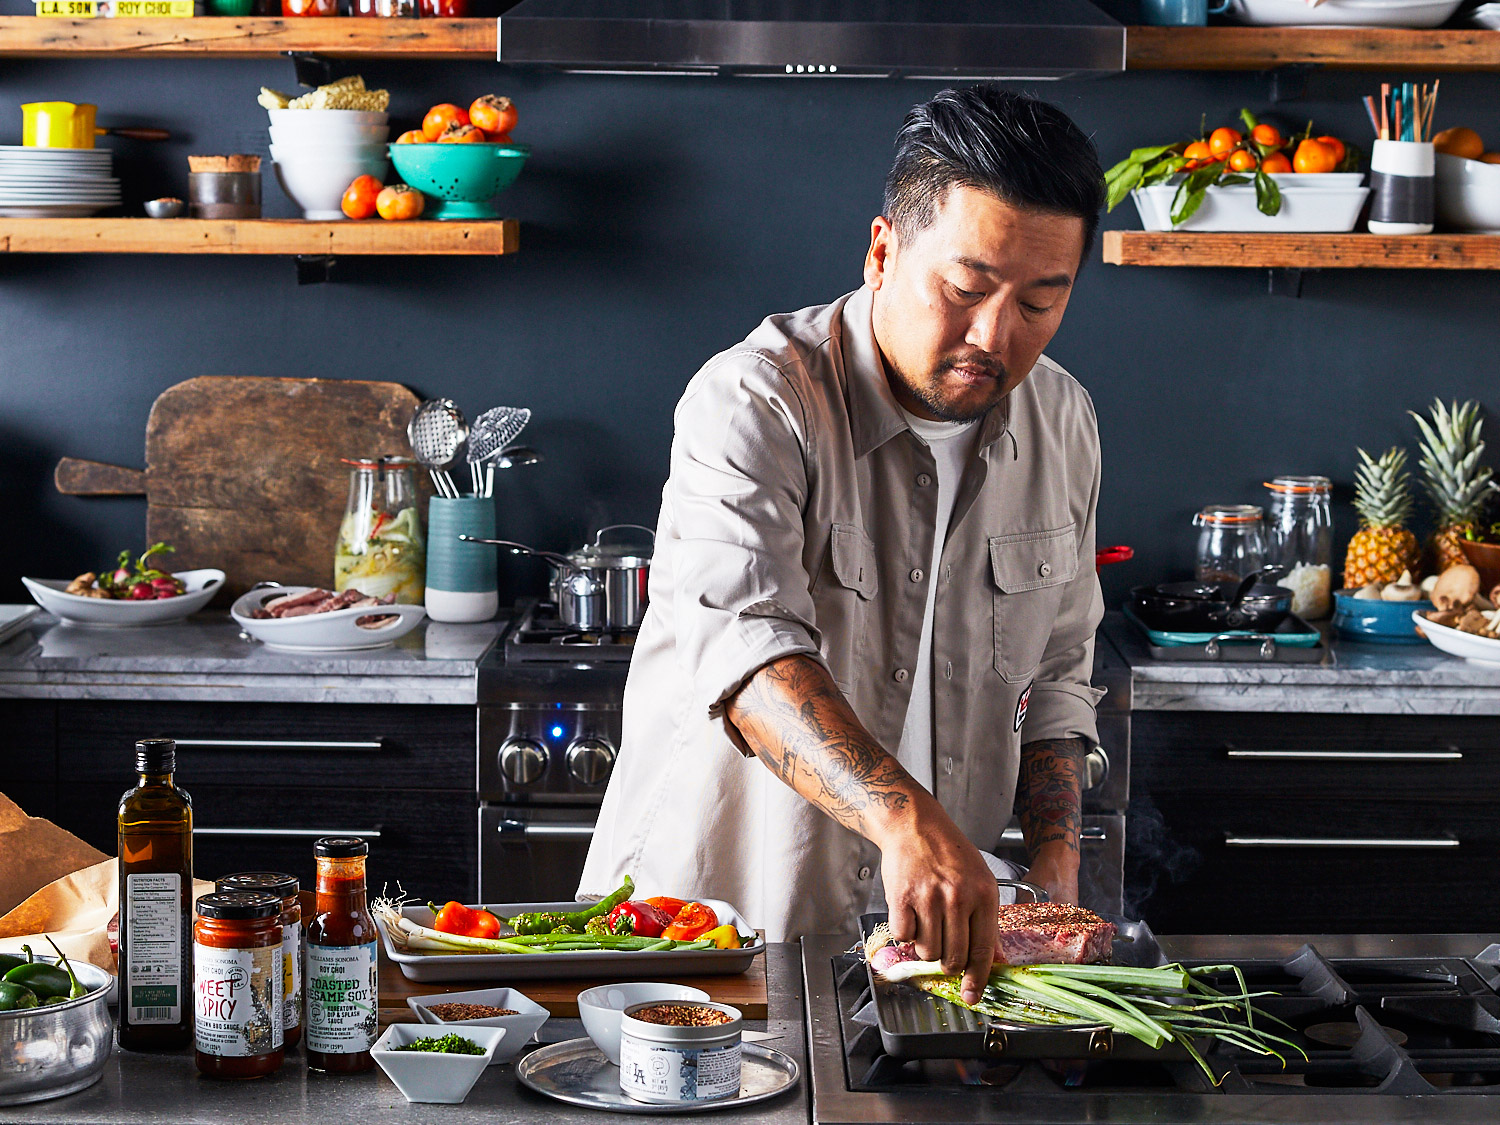 roy choi in the kitchen